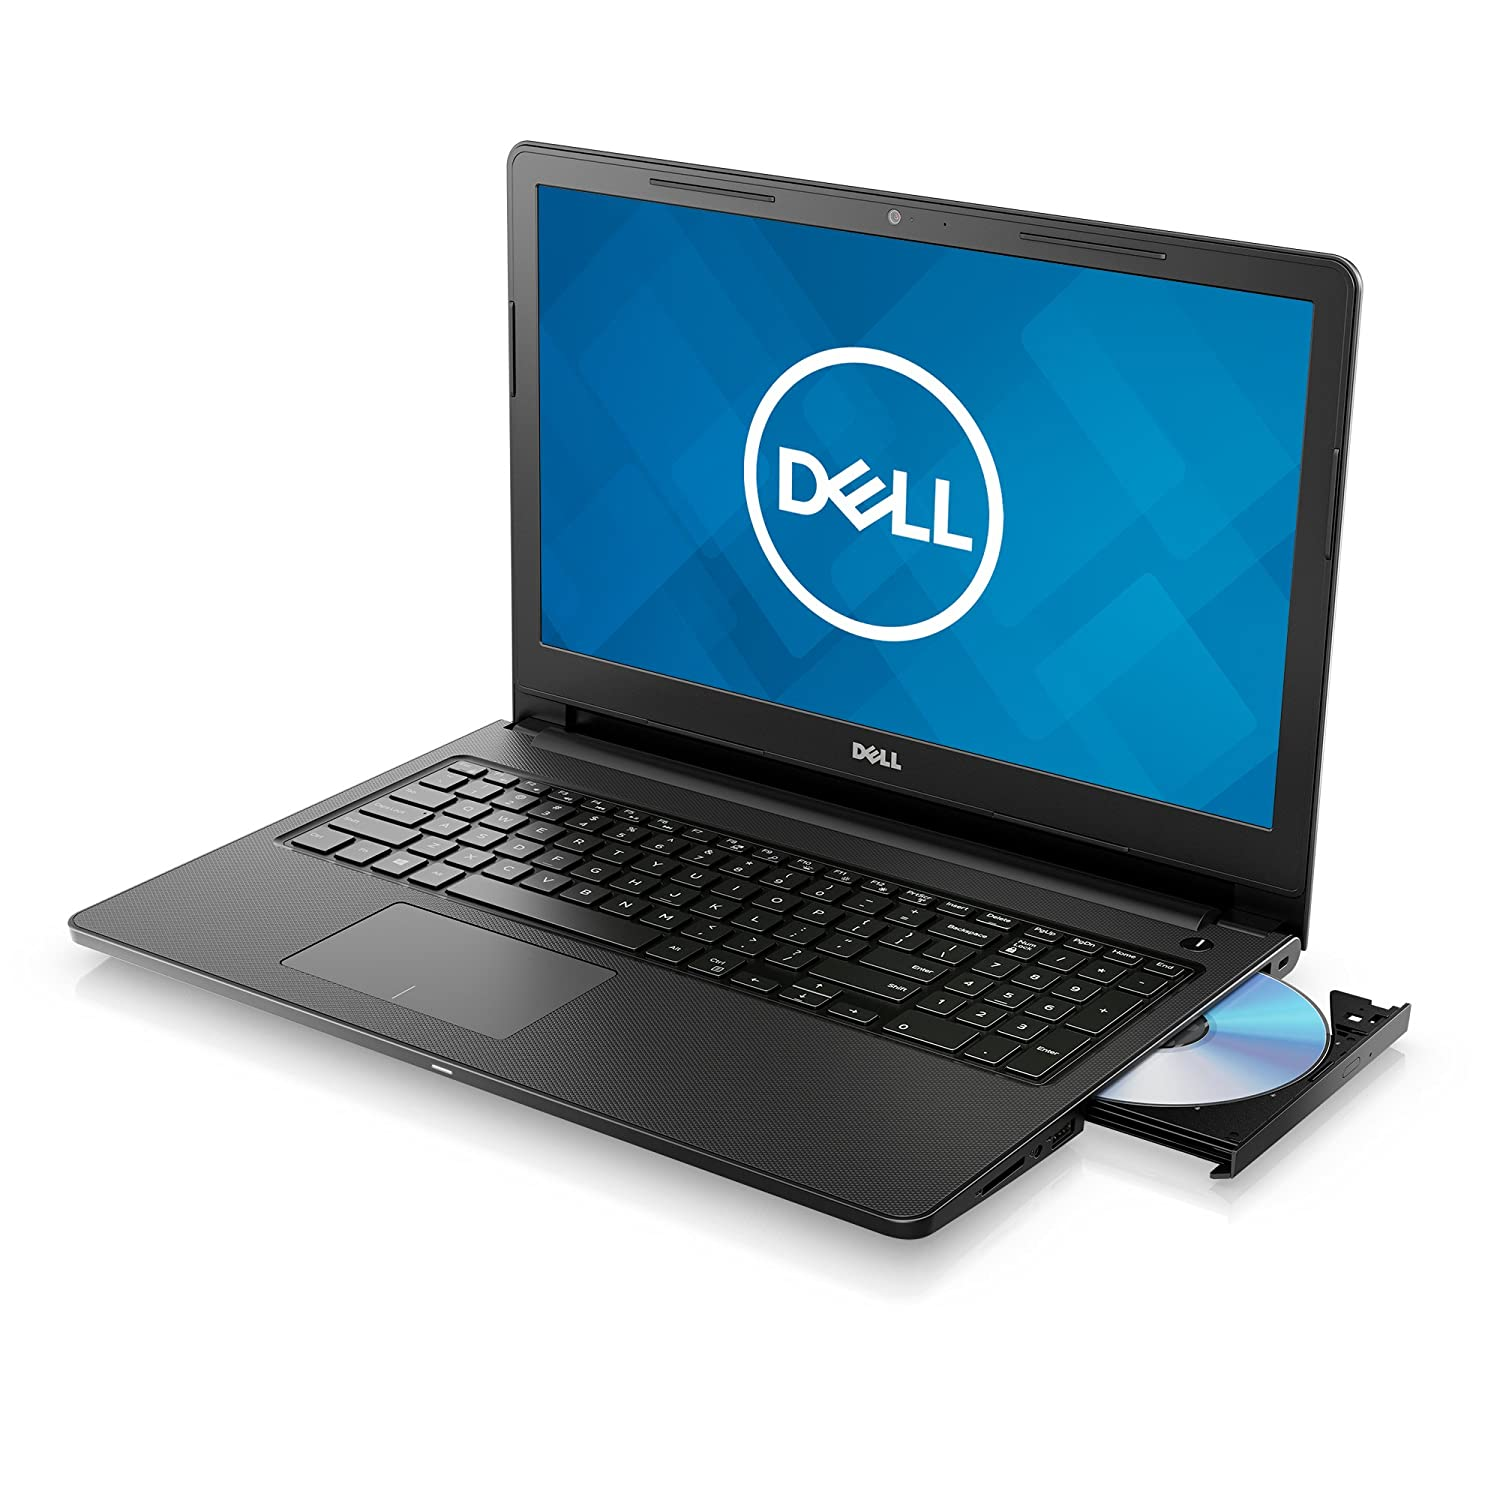 Dell i3567-5185BLK-PUS Inspiron Laptop Review